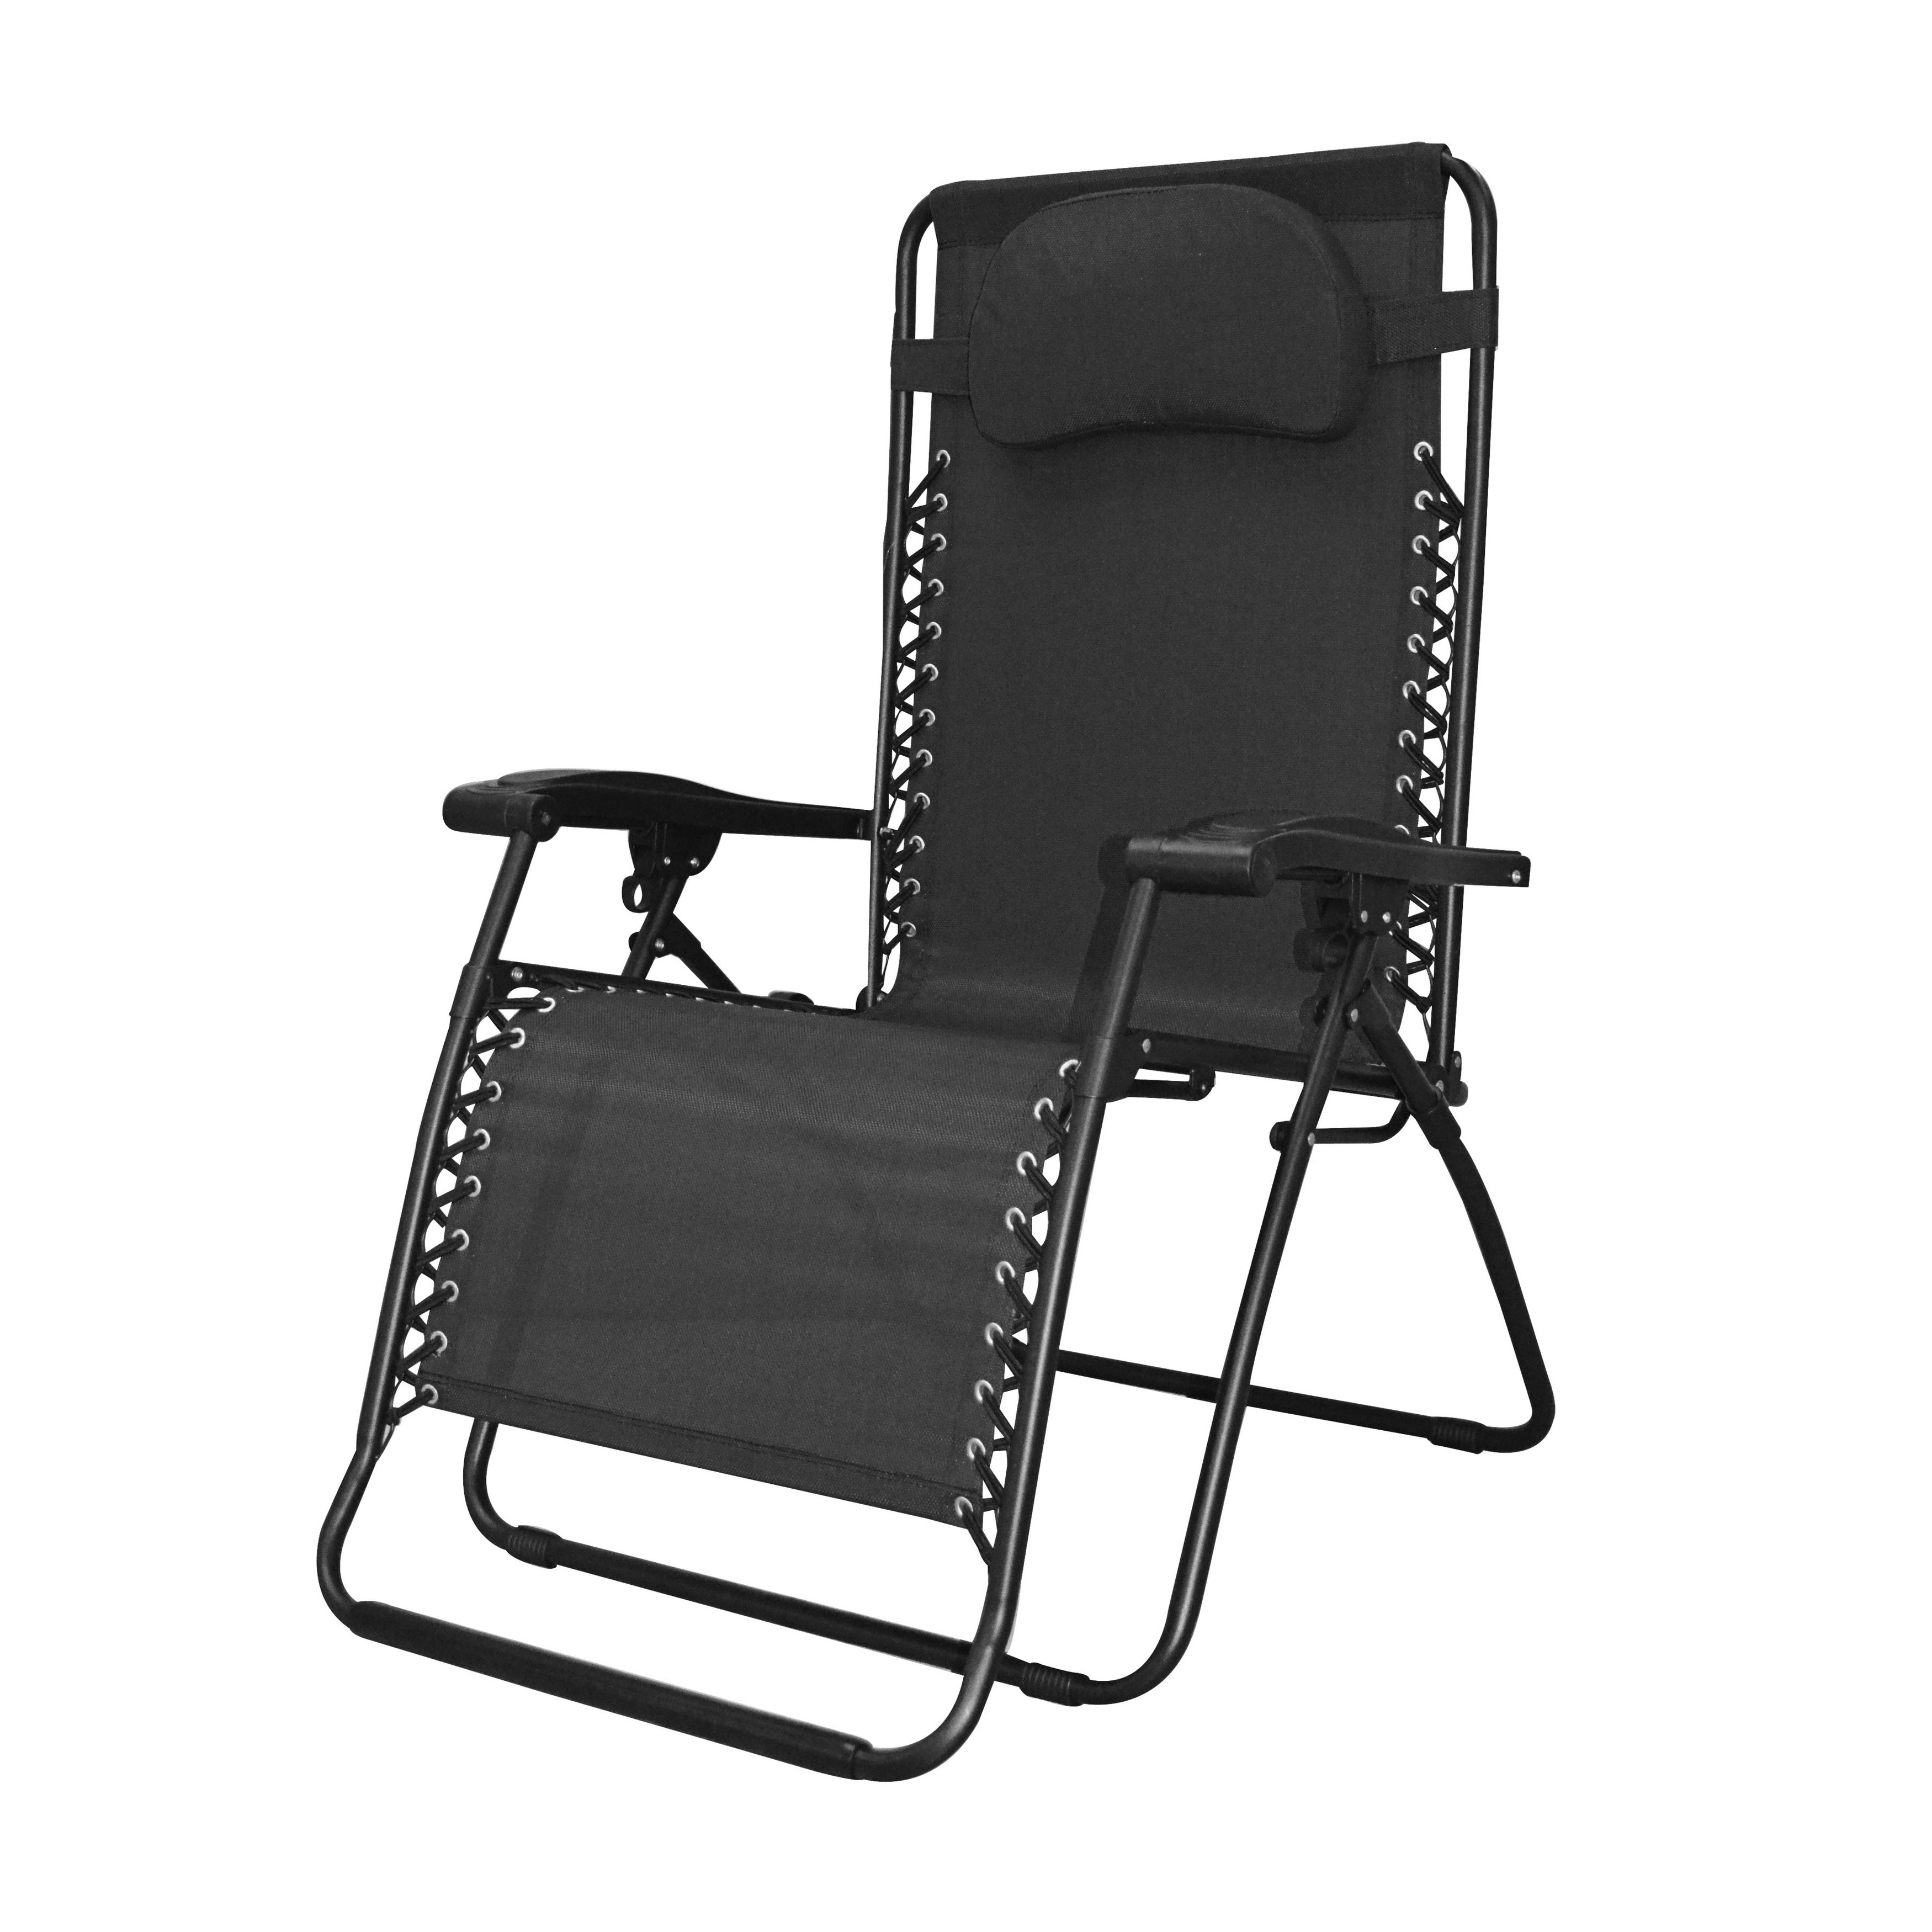 Preferred Caravan Sports Infinity Black Oversized Zero Gravity Chair With Caravan Sports Grey Infinity Chairs (View 10 of 25)